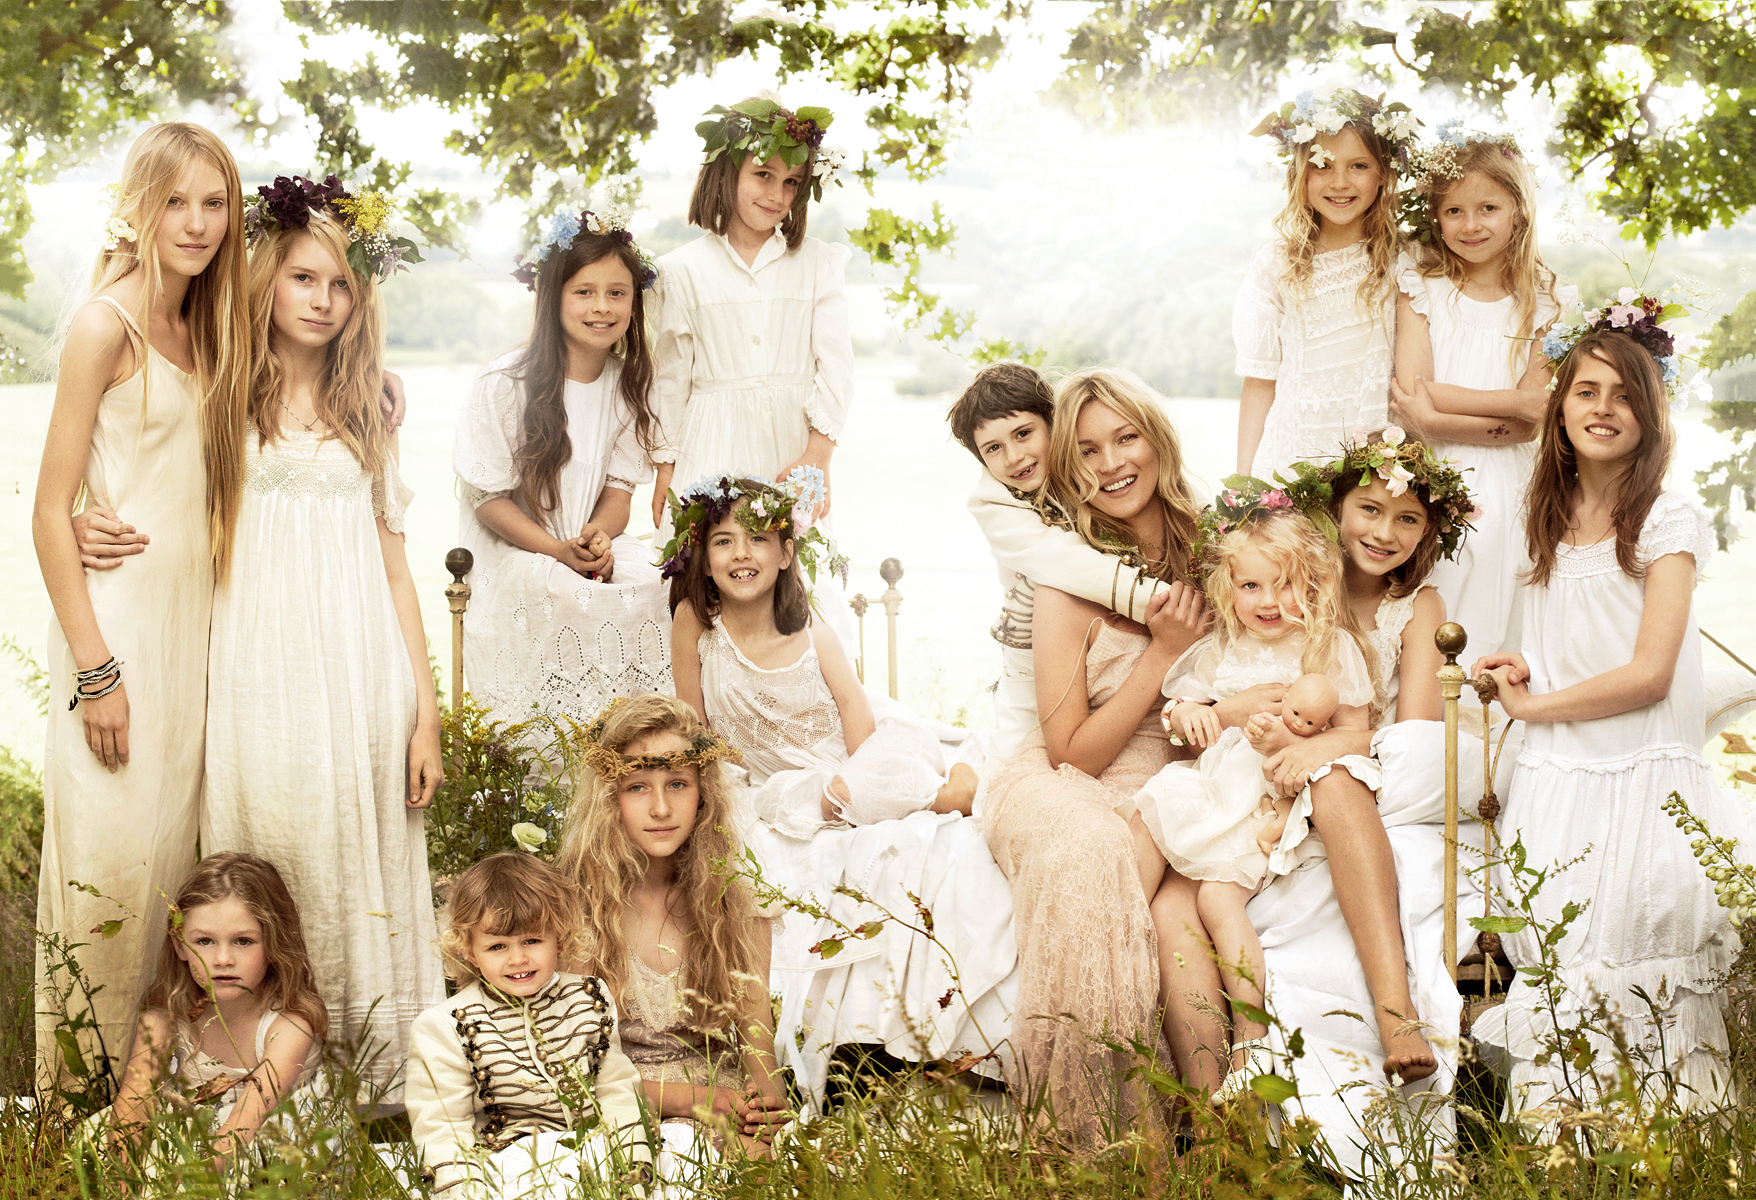 The most dreamy of wedding photos, an enchanted vision of Kate with her page boys and 14 flowers girls dress insilk and delicate eyelet petticoat dresses,